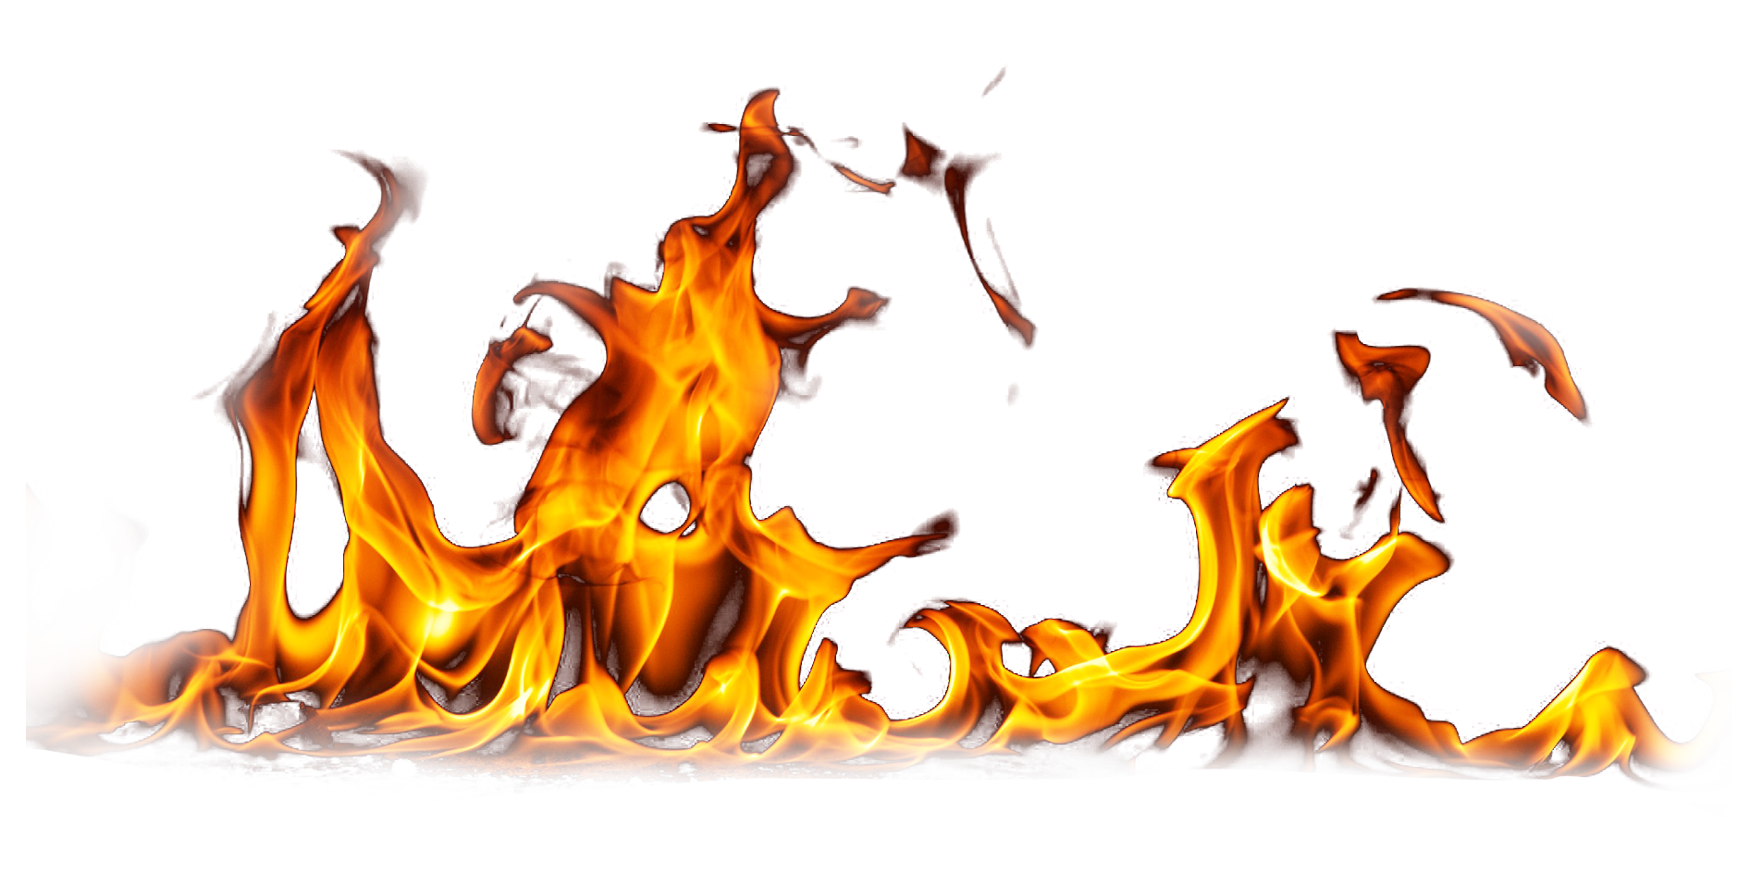 Fire Flame Png Image Image Png Hd Images